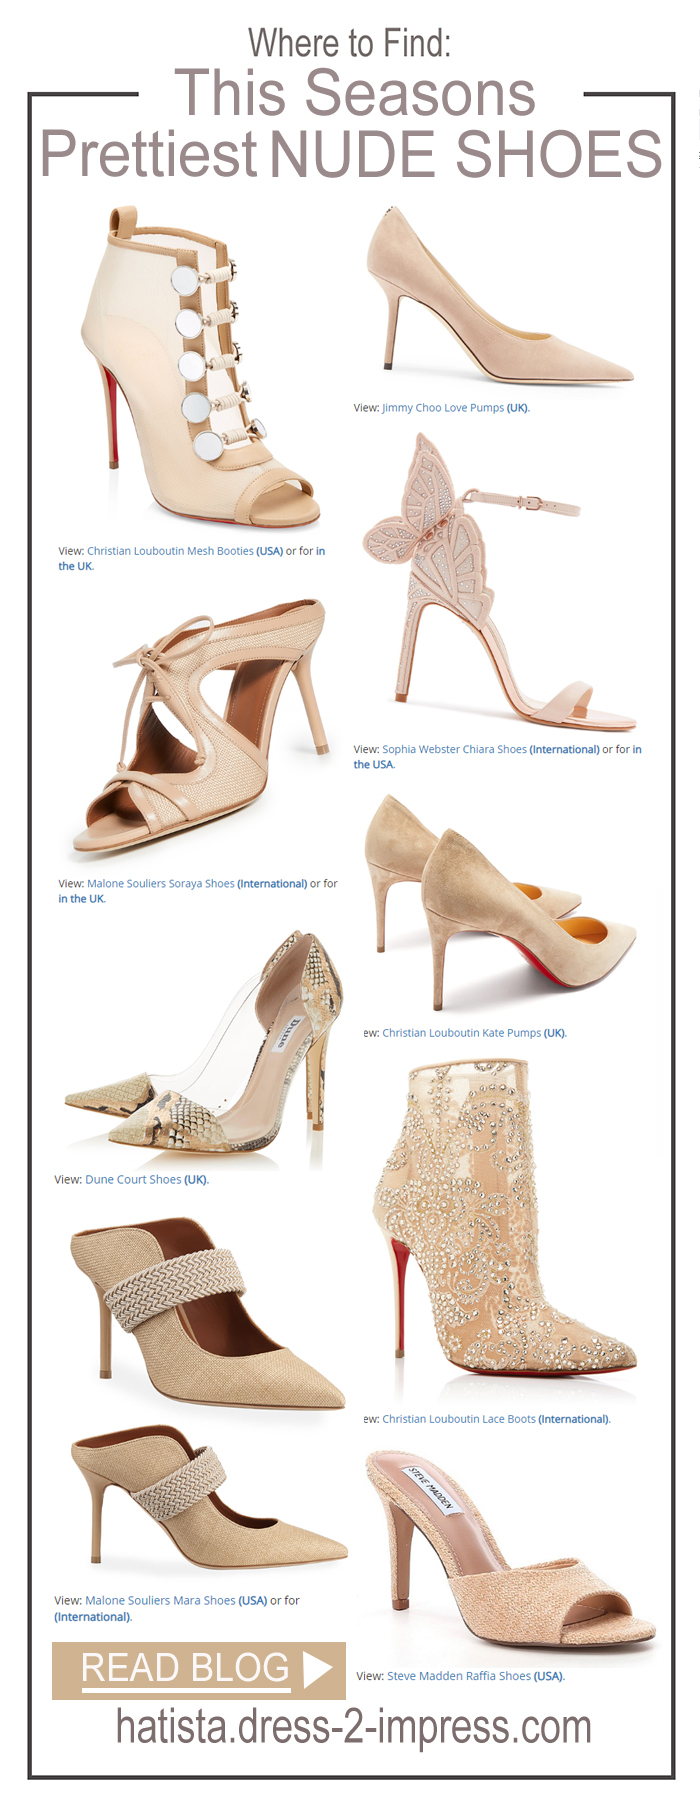 Where to find the best Nude Shoes, Best Nude Shoes for a Summer wedding Guest, Best shoes for winter Weddings, Budget Nude Shoes, Luxury Shoes, Designer Nude Shoes. Nude Shoes on a Budget